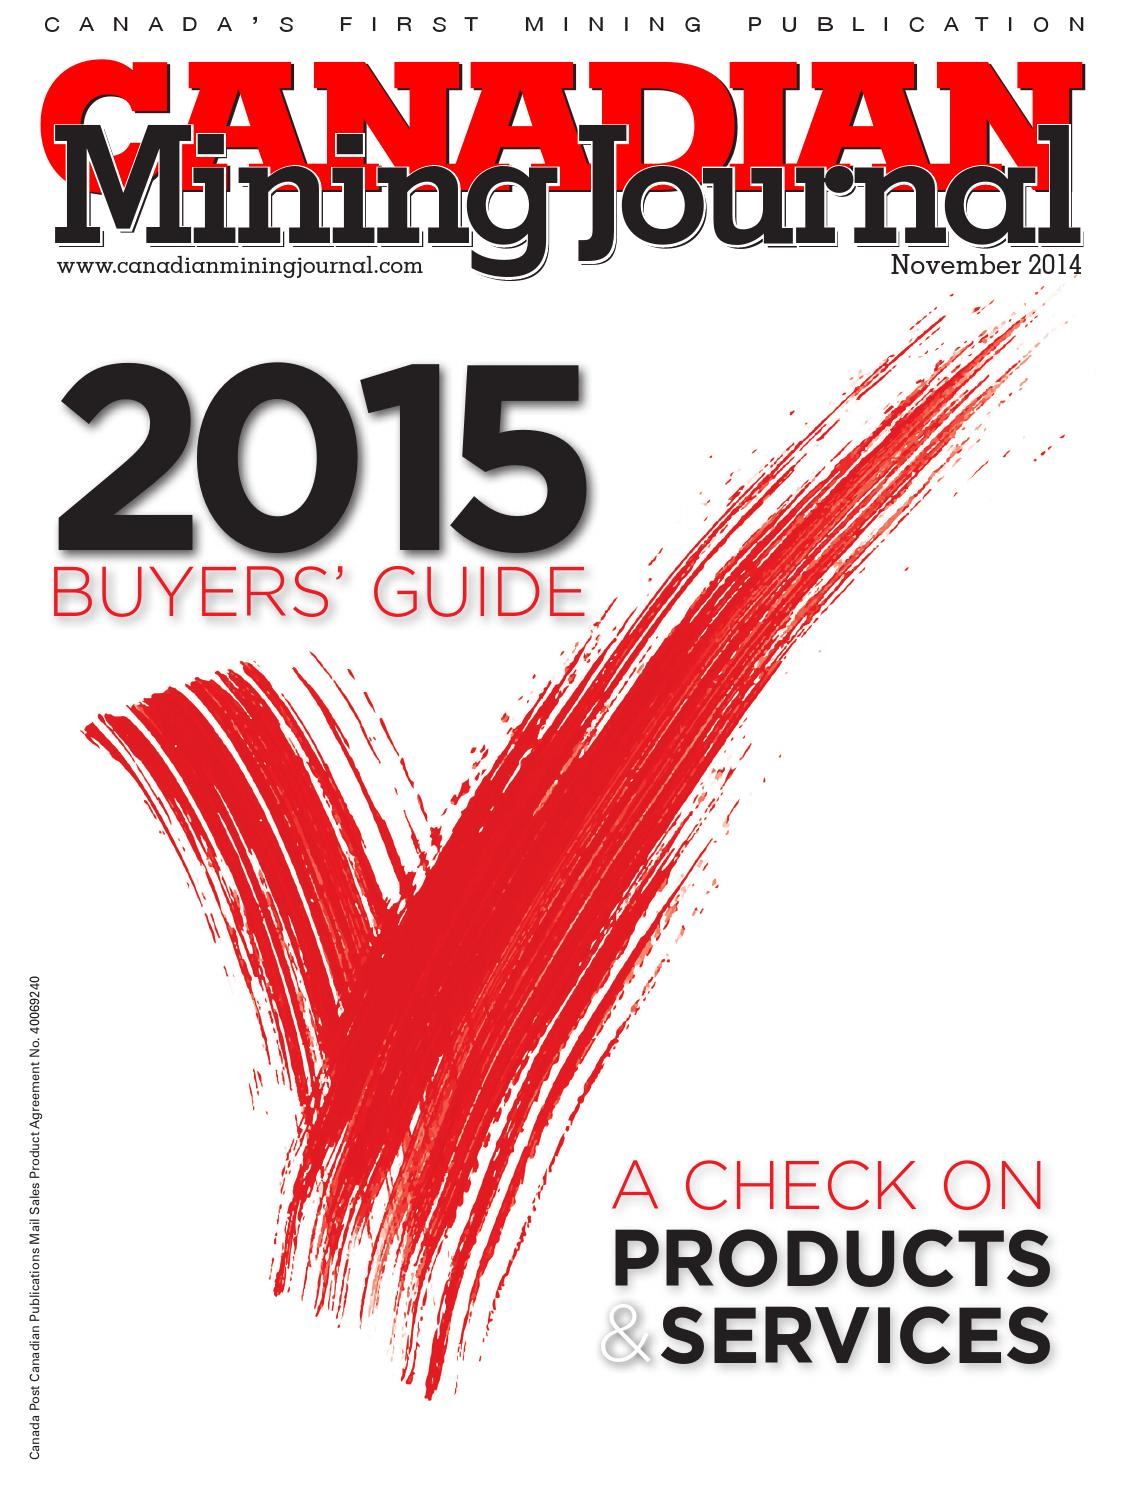 Canadian Mining Journal November 2014 By The Northern Miner Group Vanagon Alternator 213 8155 Wiring Diagram Issuu